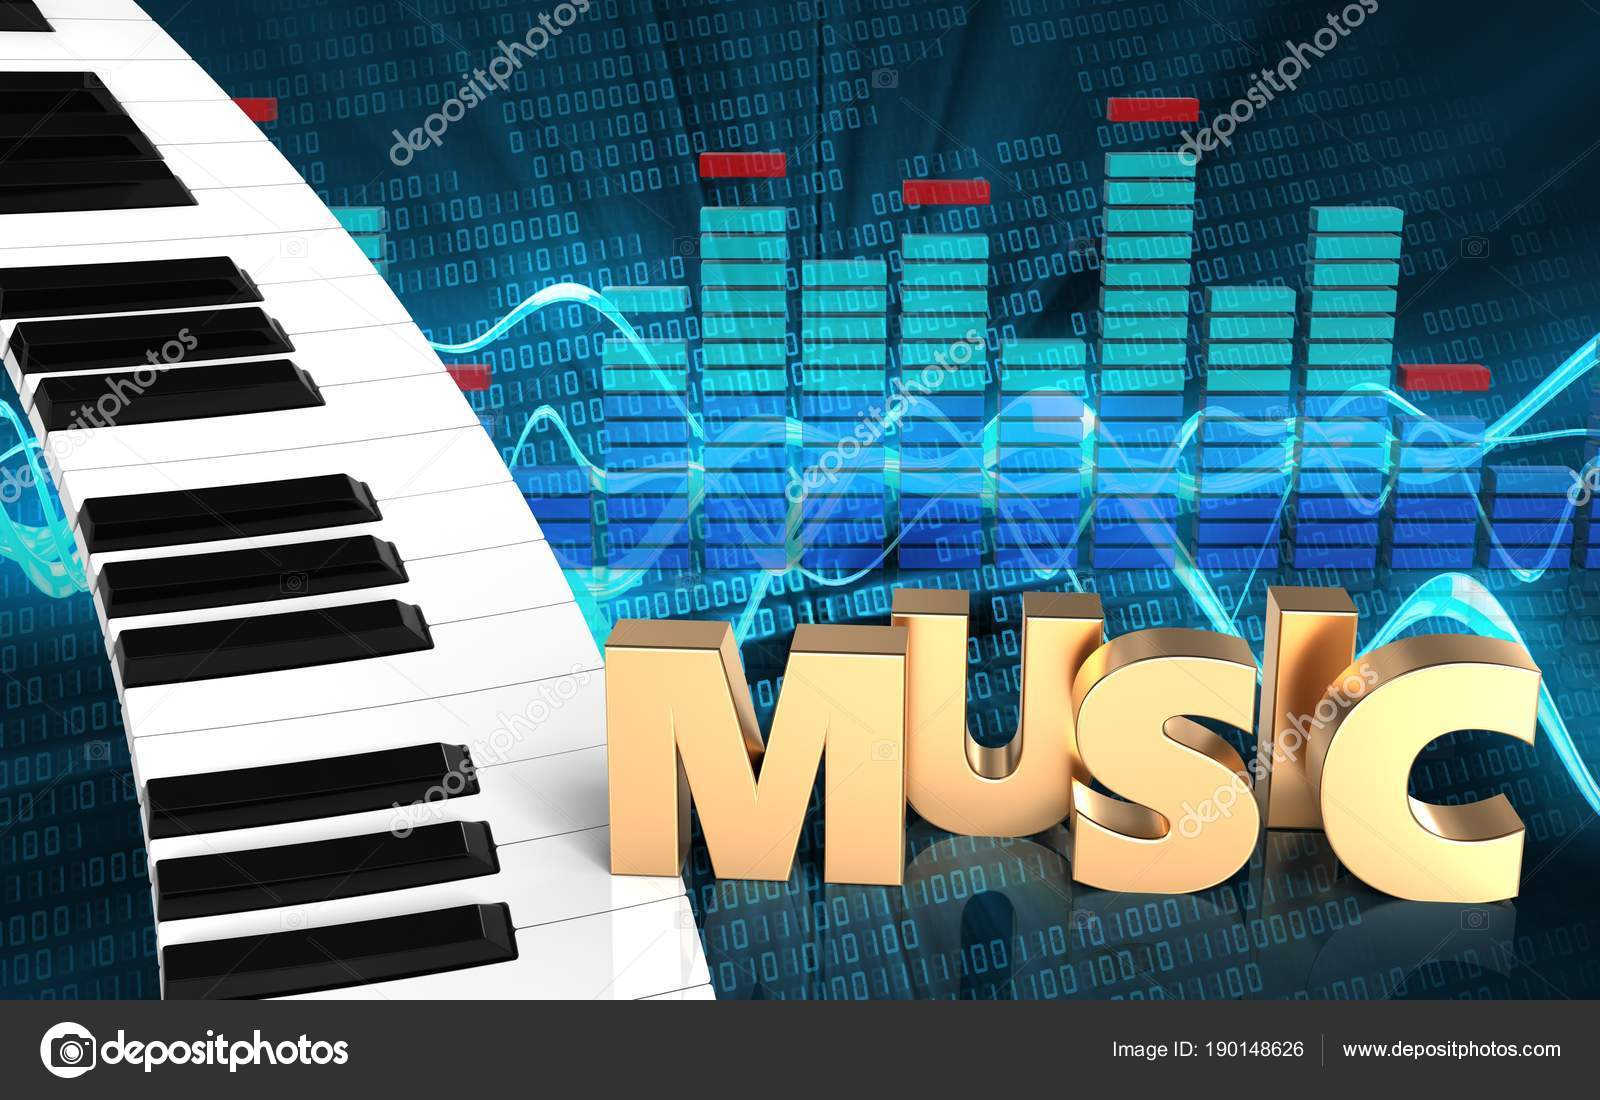 Illustration Piano Keyboard Sound Wave Digital Background Music Sign